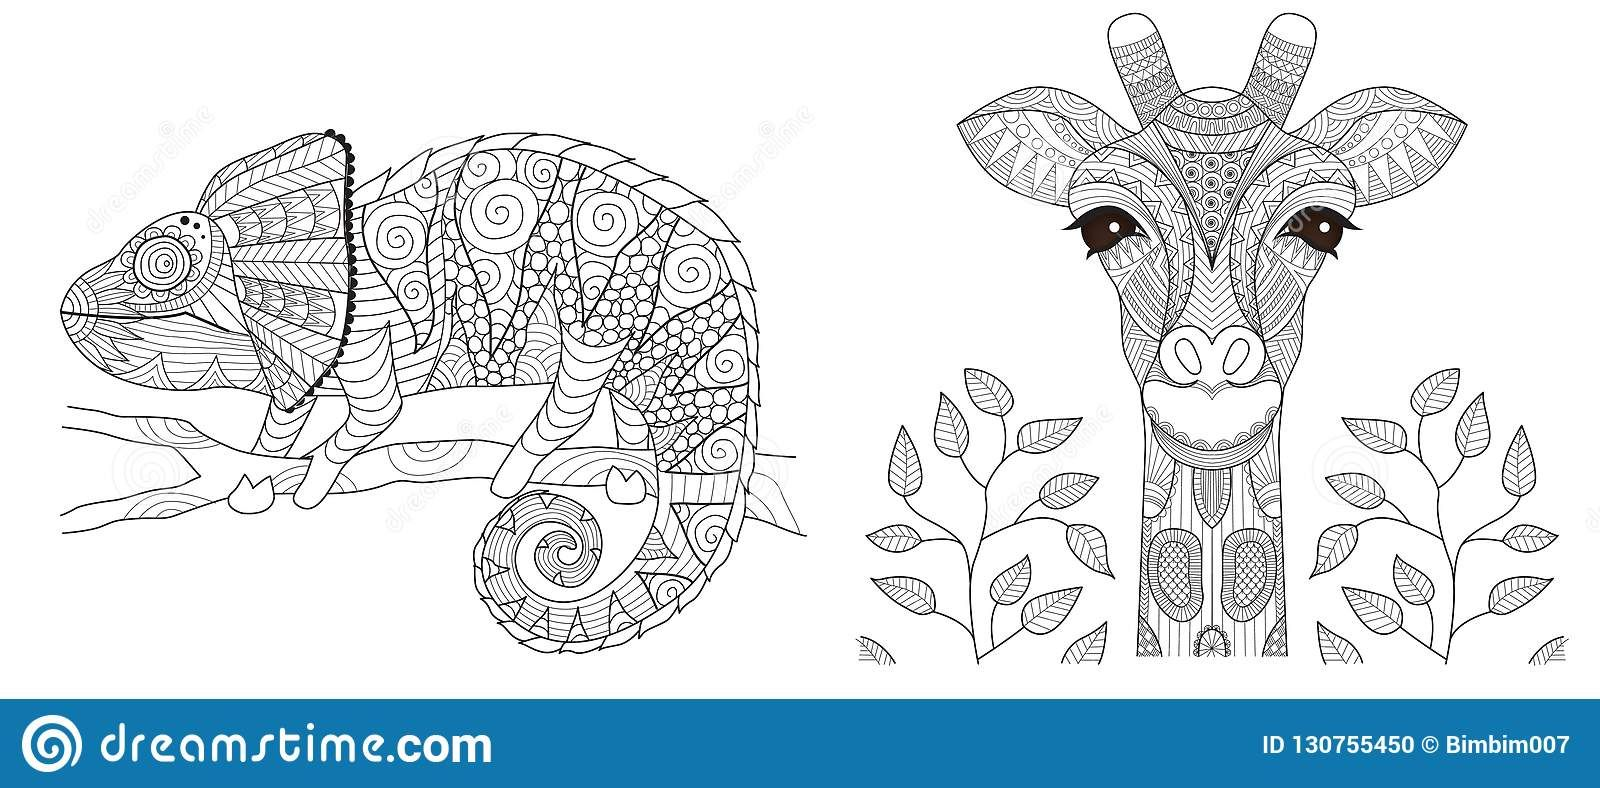 Illustration about Chameleon and giraffe set for coloring